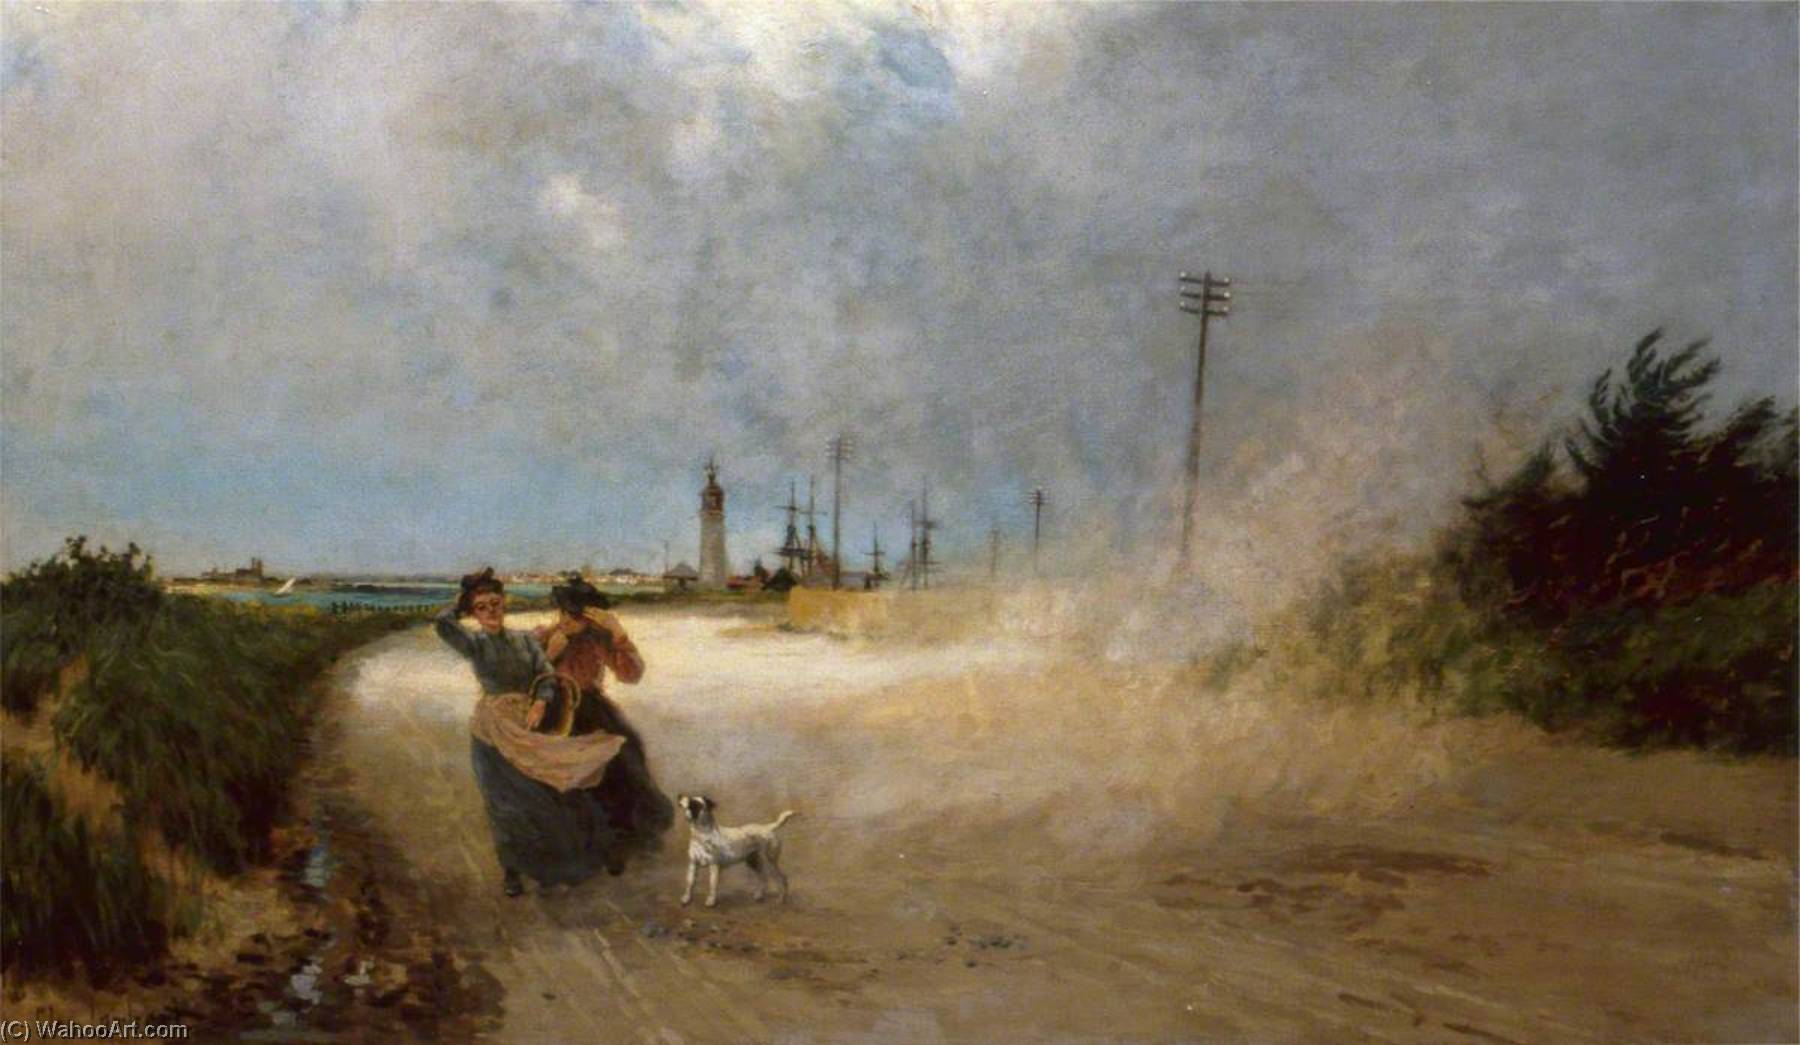 The Dust Storm, Oil On Canvas by Clement Lambert